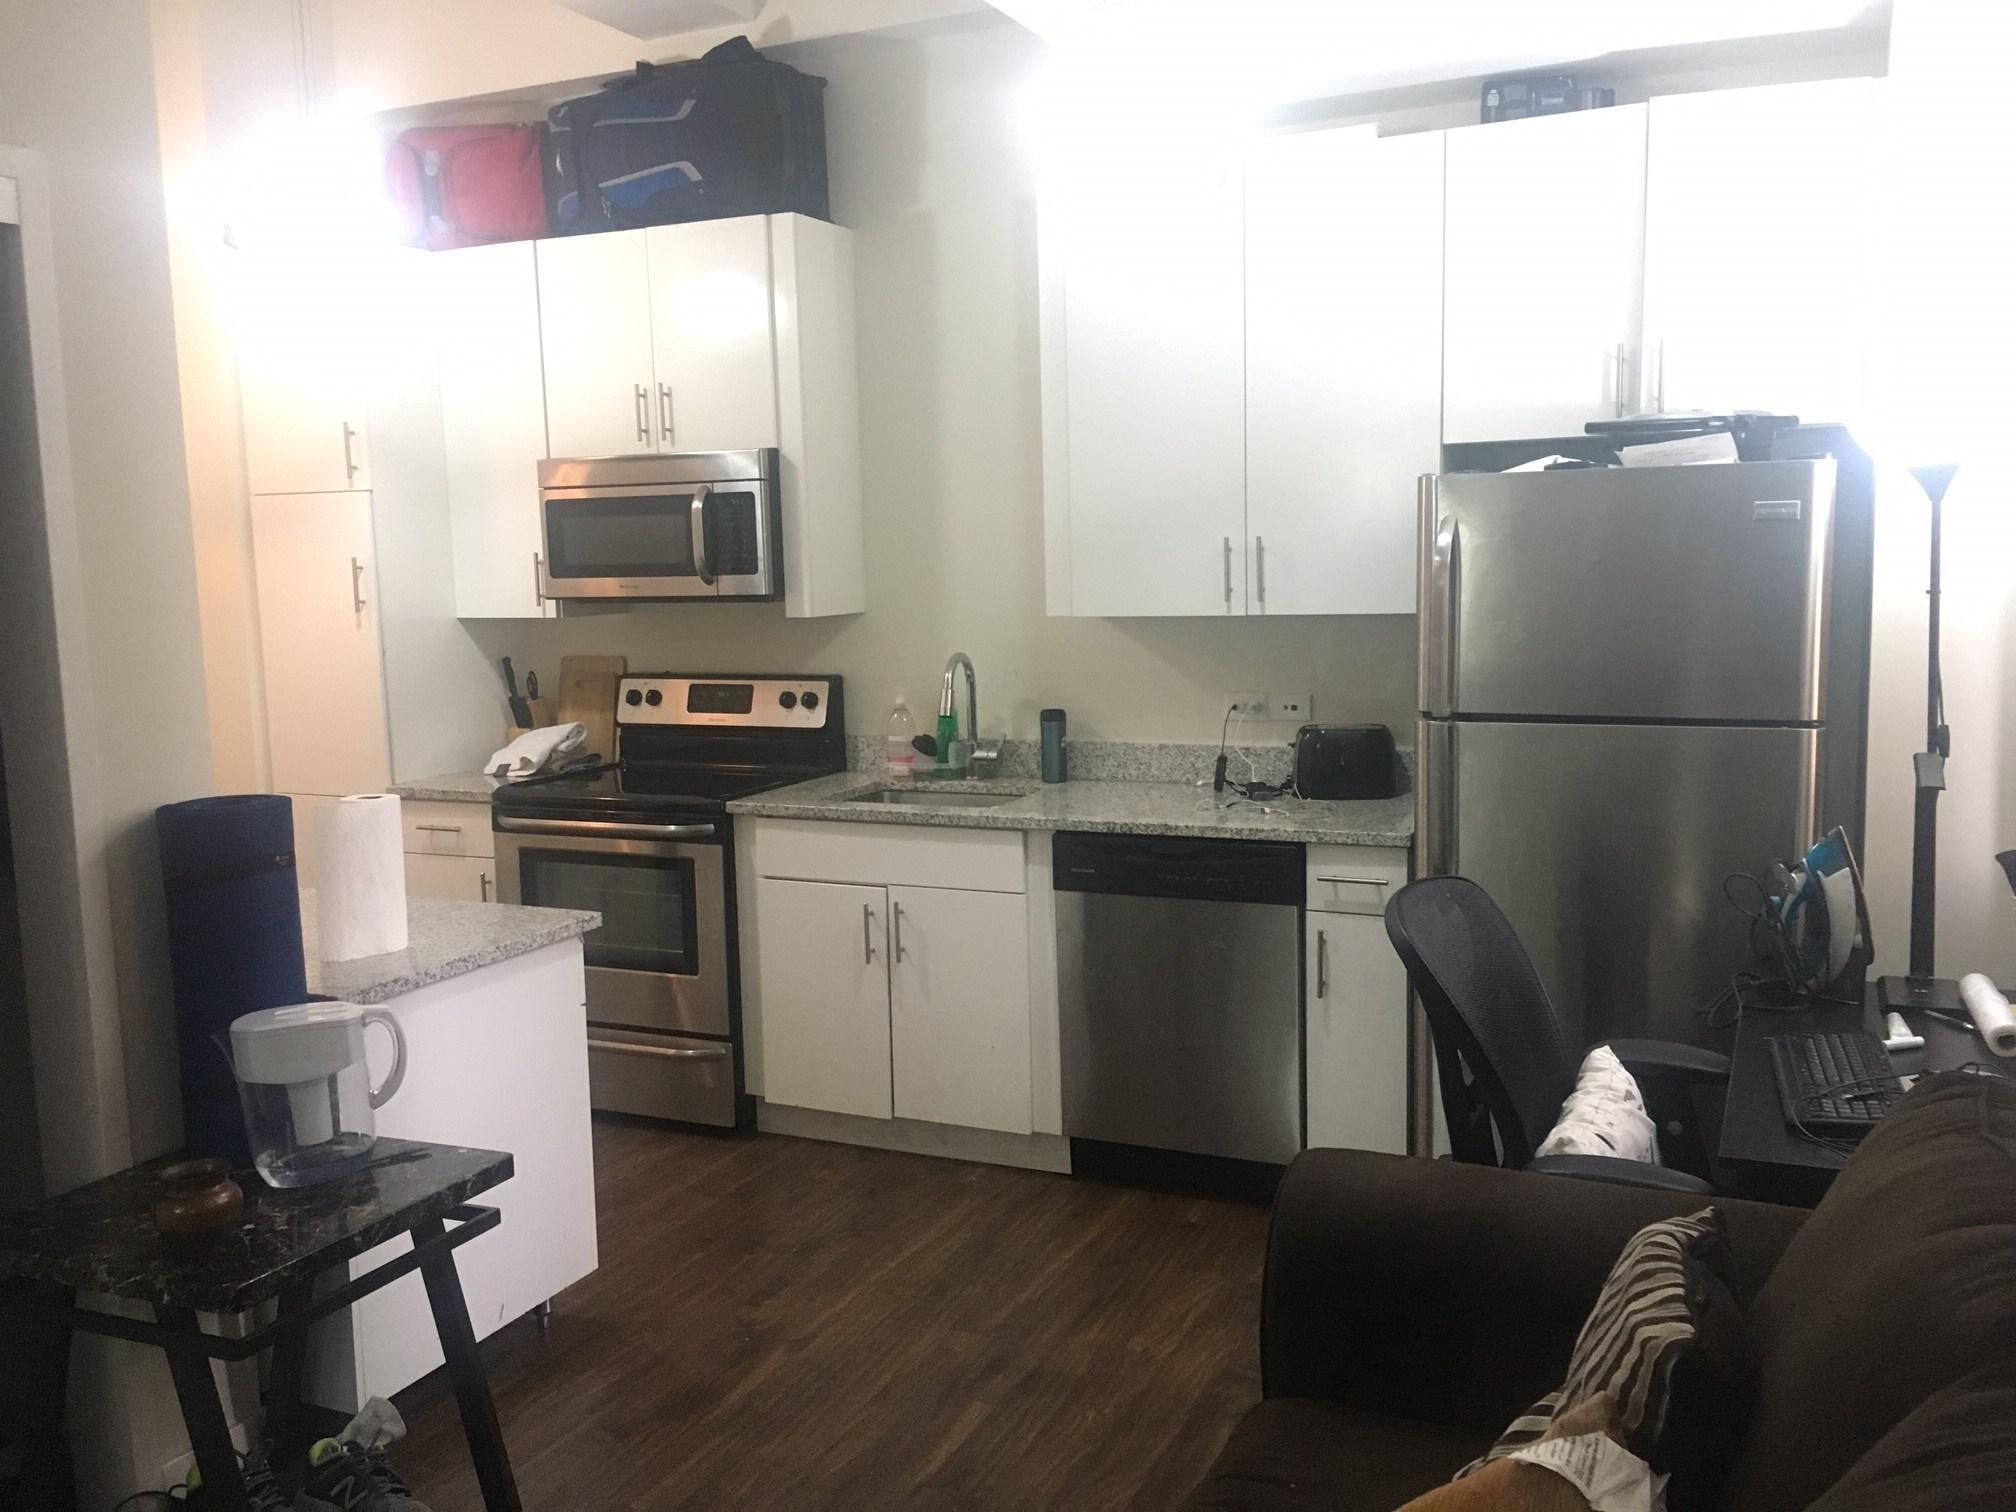 City Apartments Rooms rooms for rent jersey city, nj – apartments, house, commercial